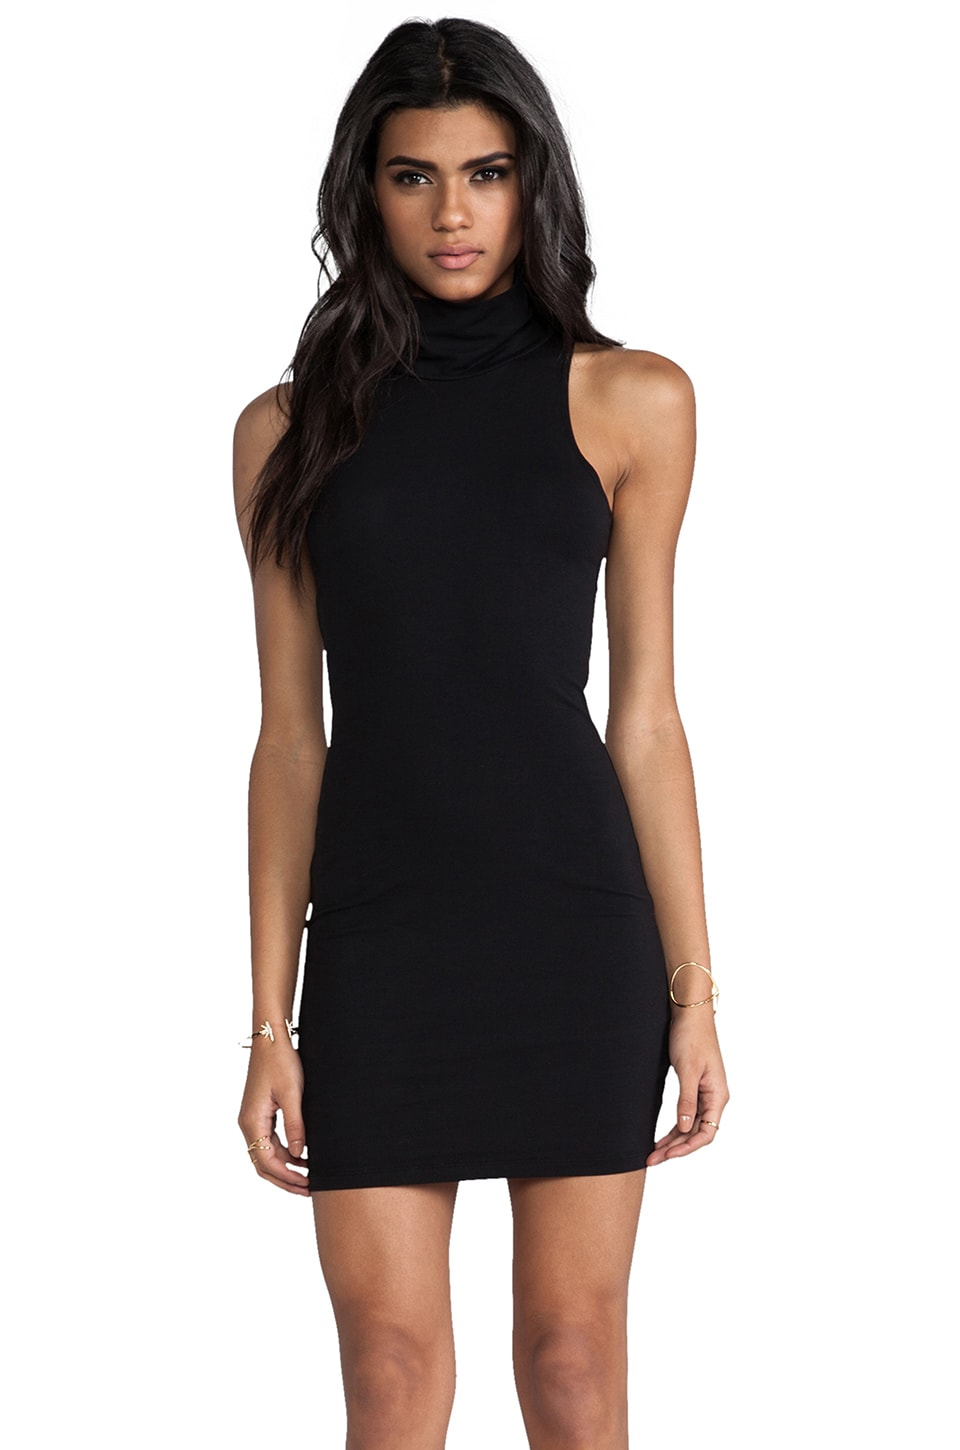 Bobi Turtleneck Tank Dress in Black